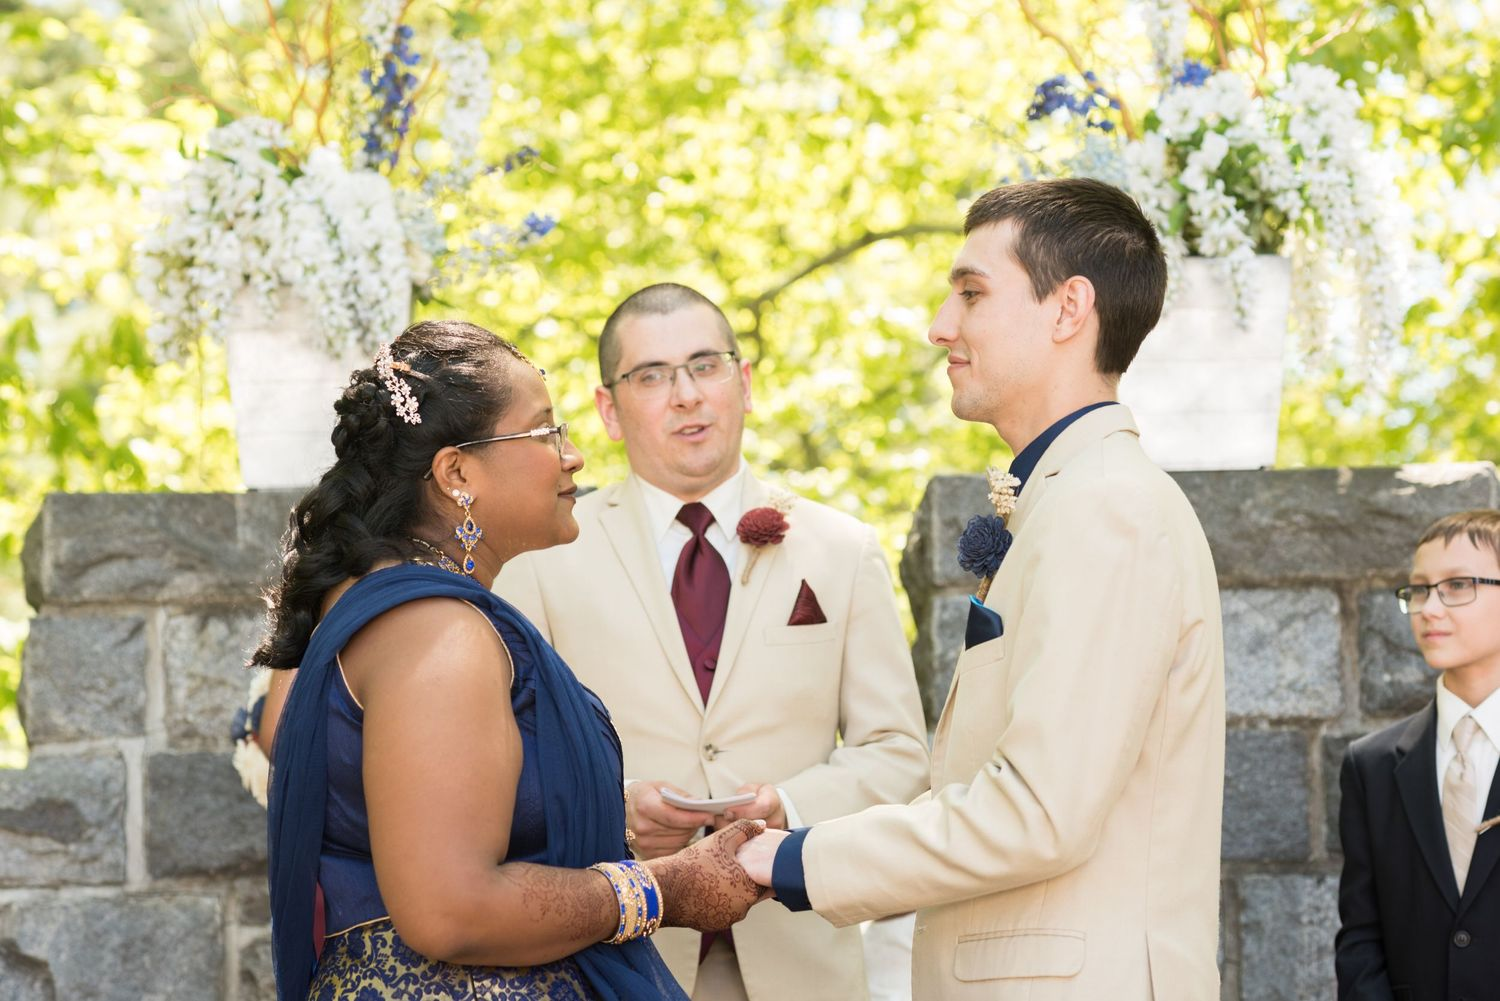 Leah Ramuglia Photography bride and groom exchange vows during their wedding at Searles Castle in Wyndham, New Hampshire